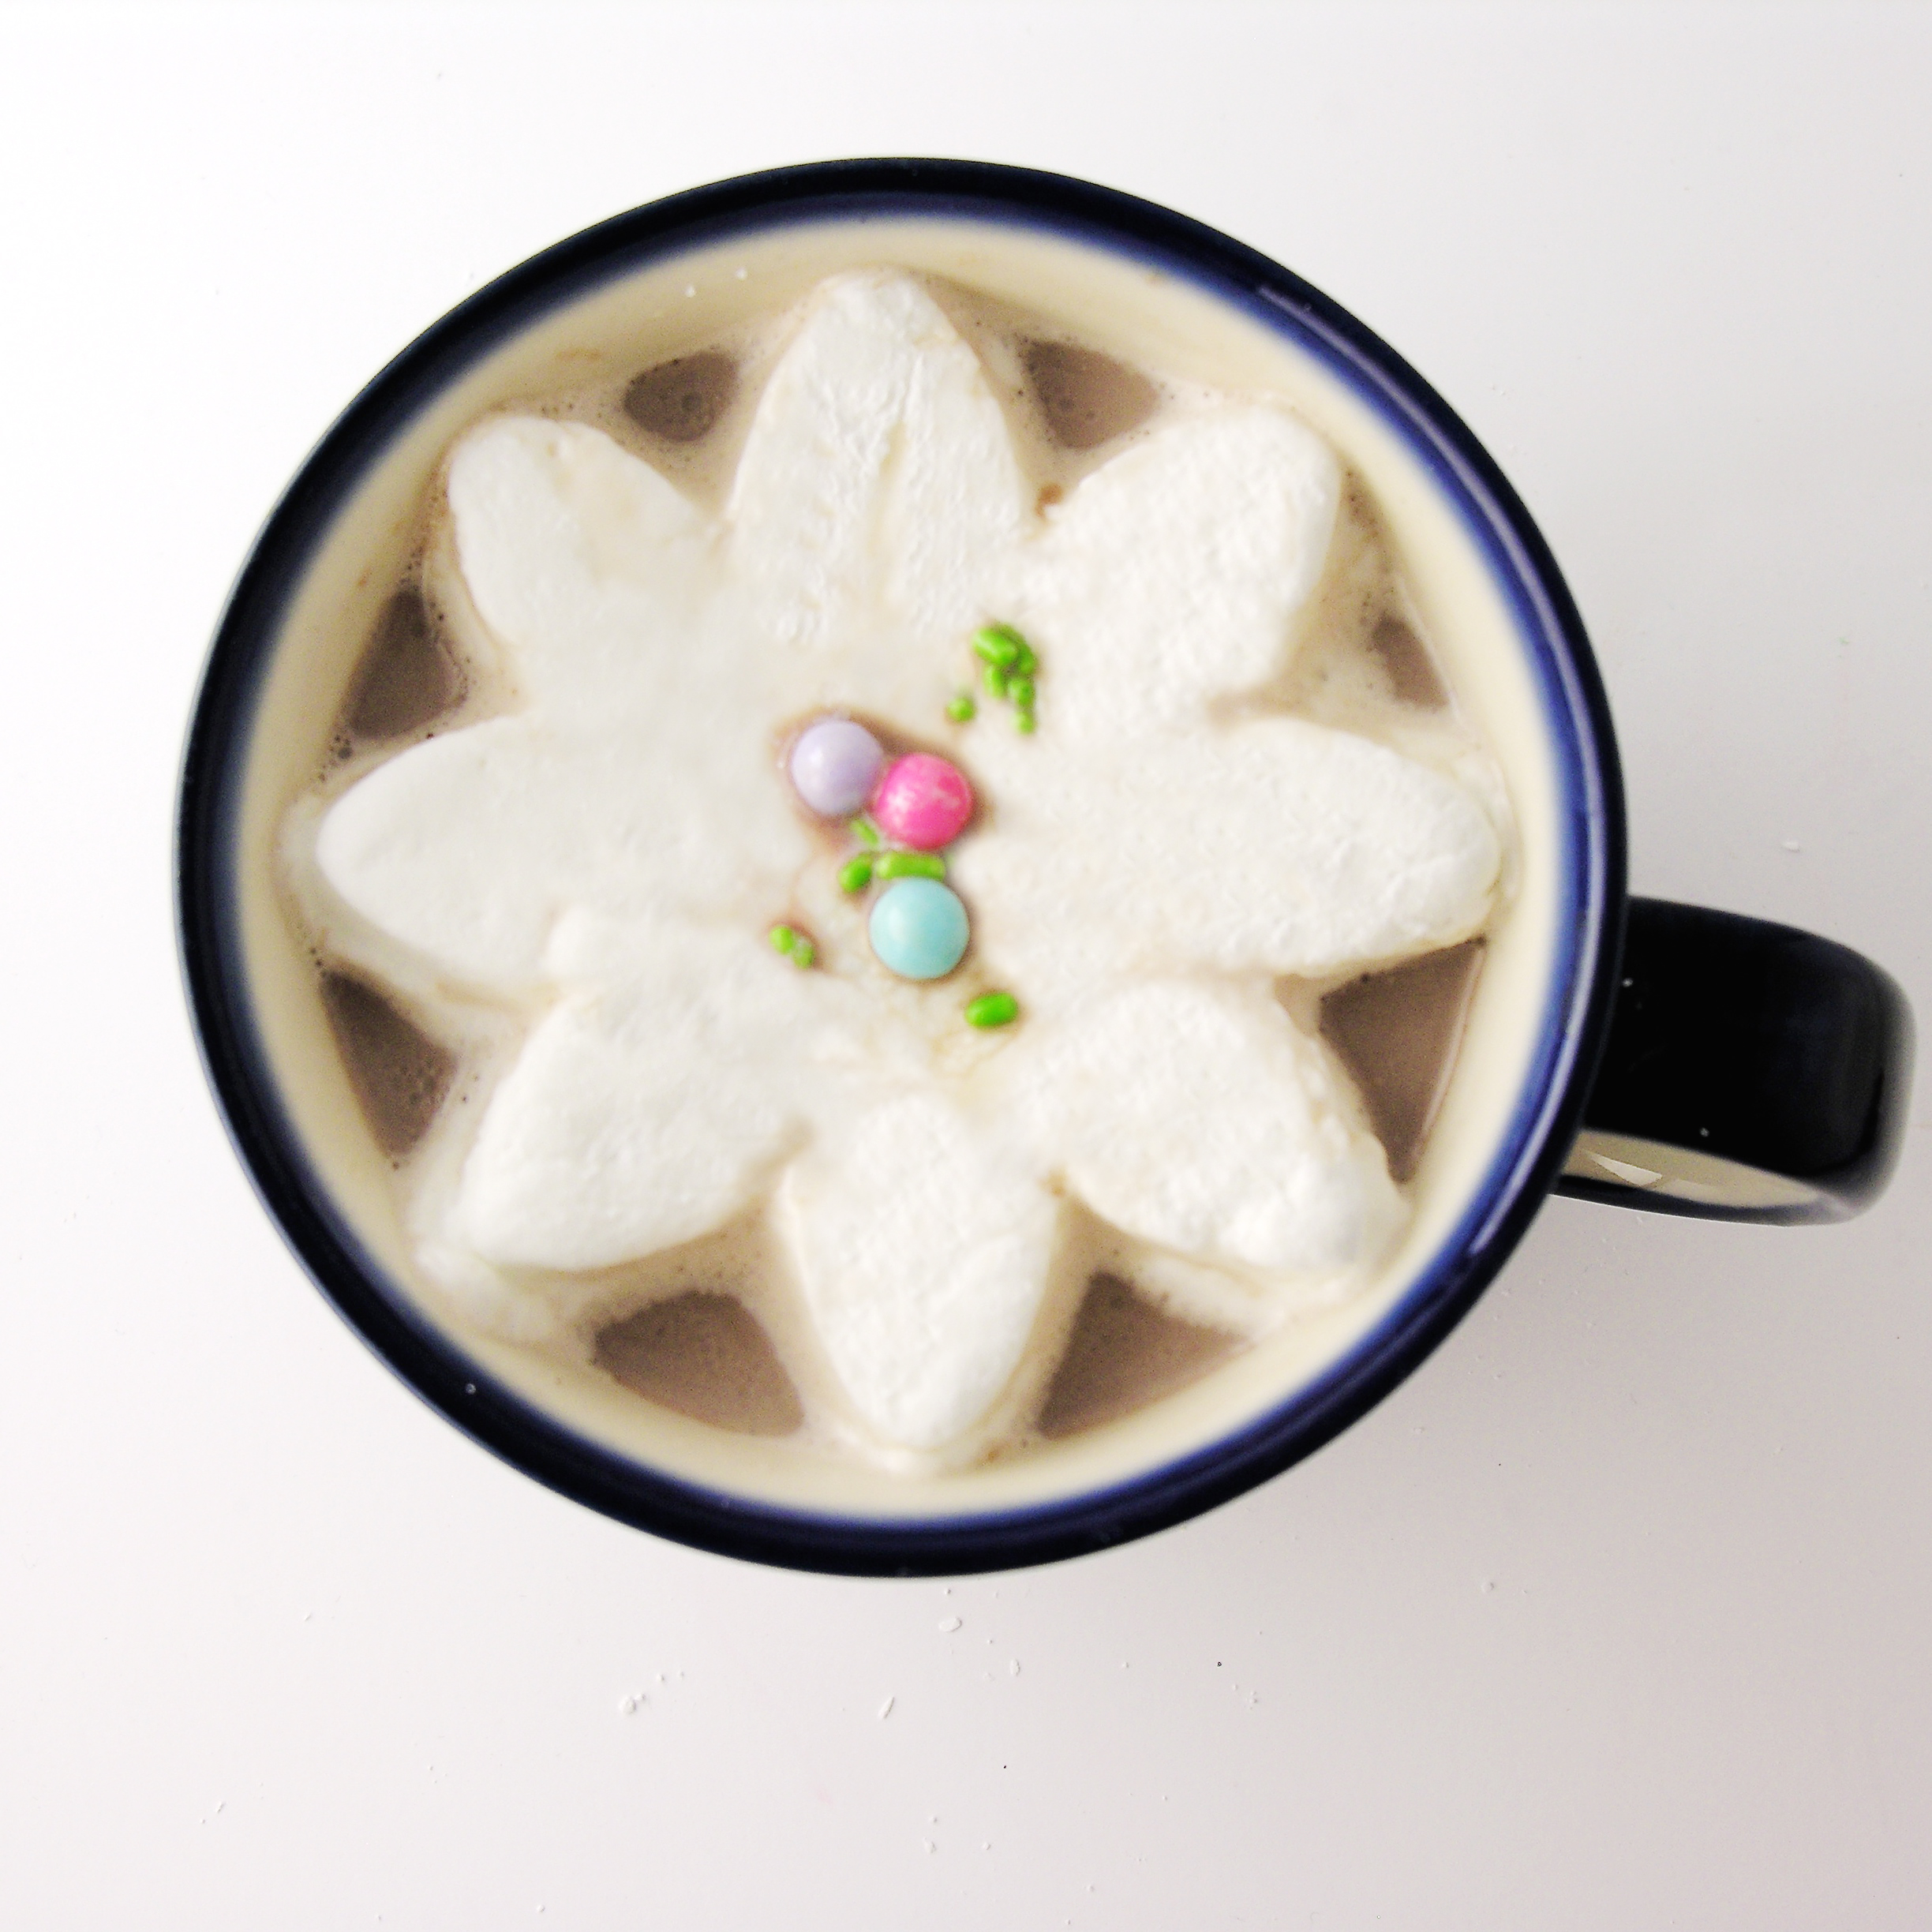 Blooming Marshmallows For Cocoa Make Your Own Easybaked